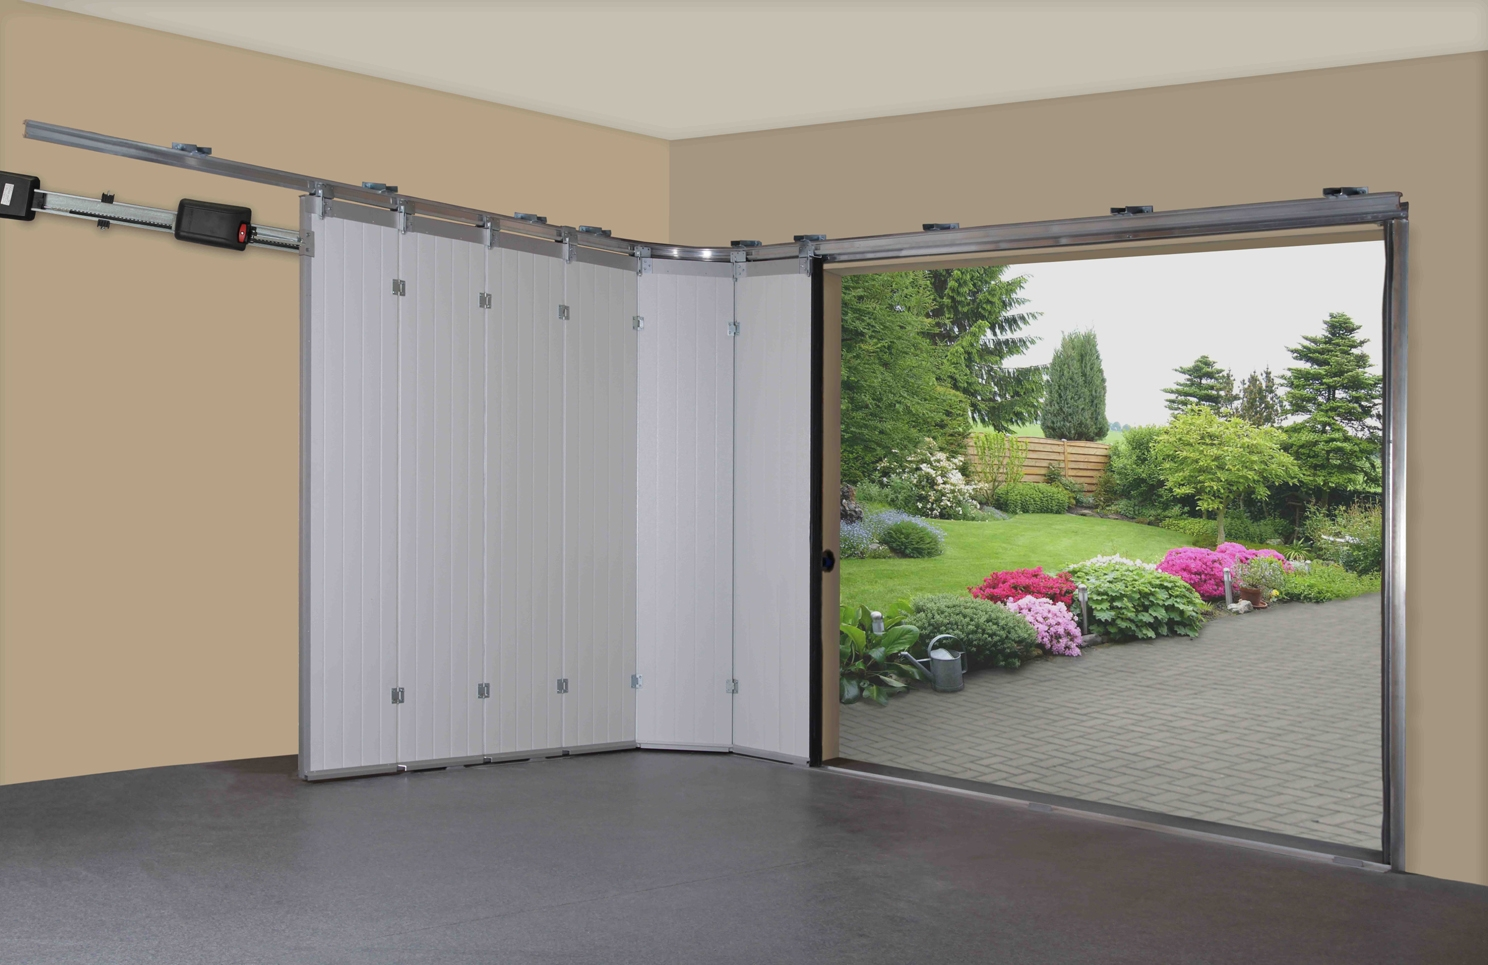 laundry for plans about nugi doors glass sale ideas facts garage bathroom bifold horizontal shocking gallery door dallas